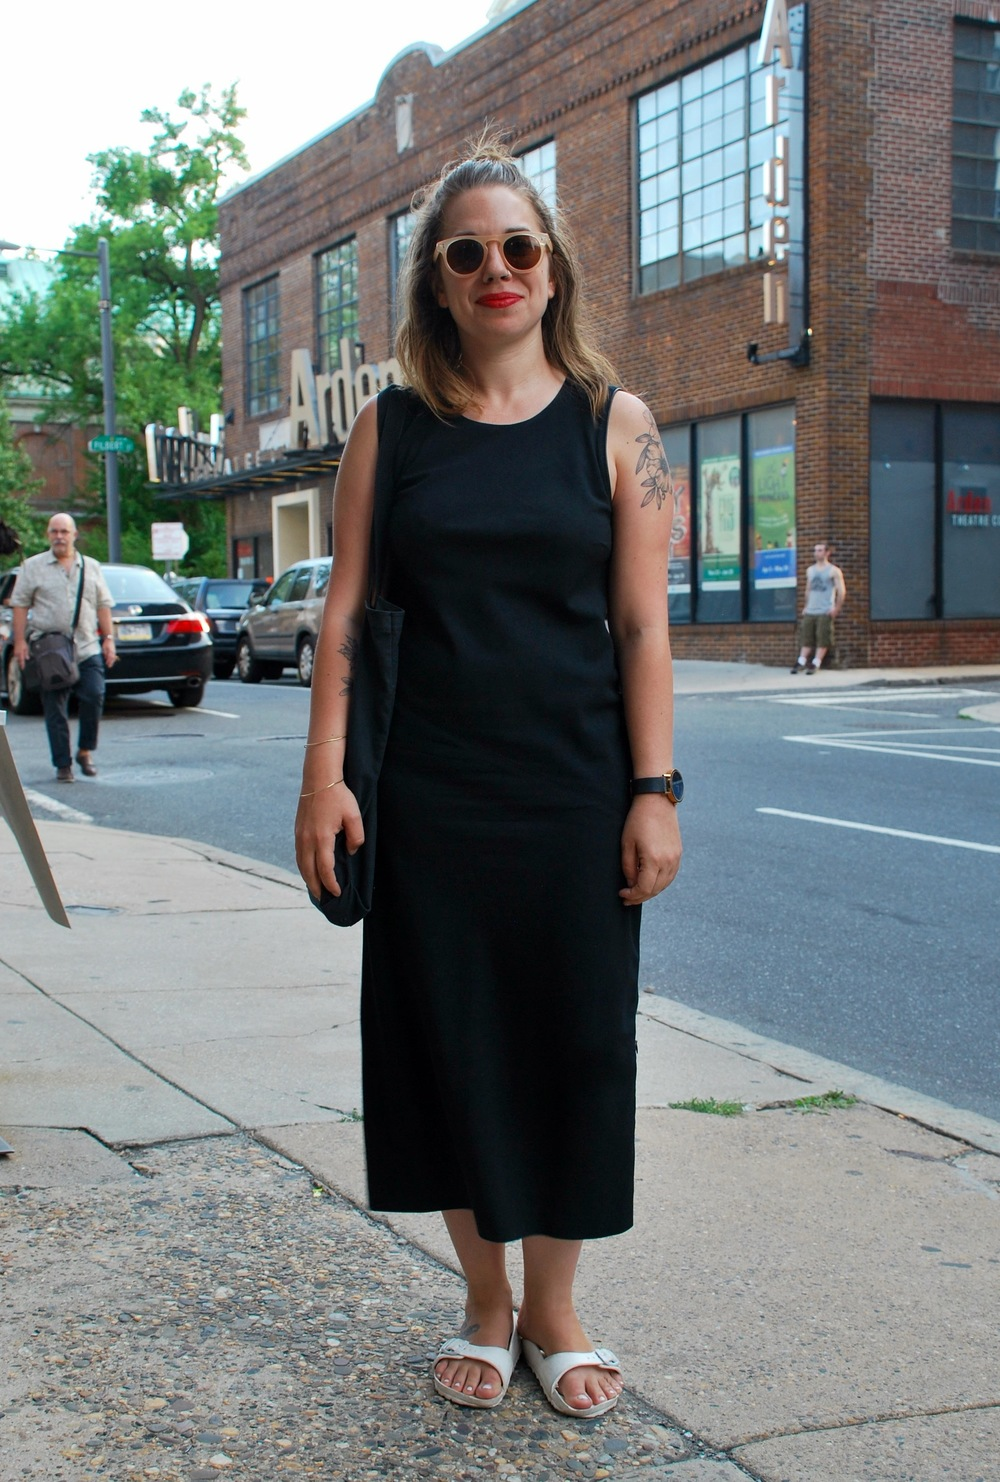 Philadelphia Street Style - Old City